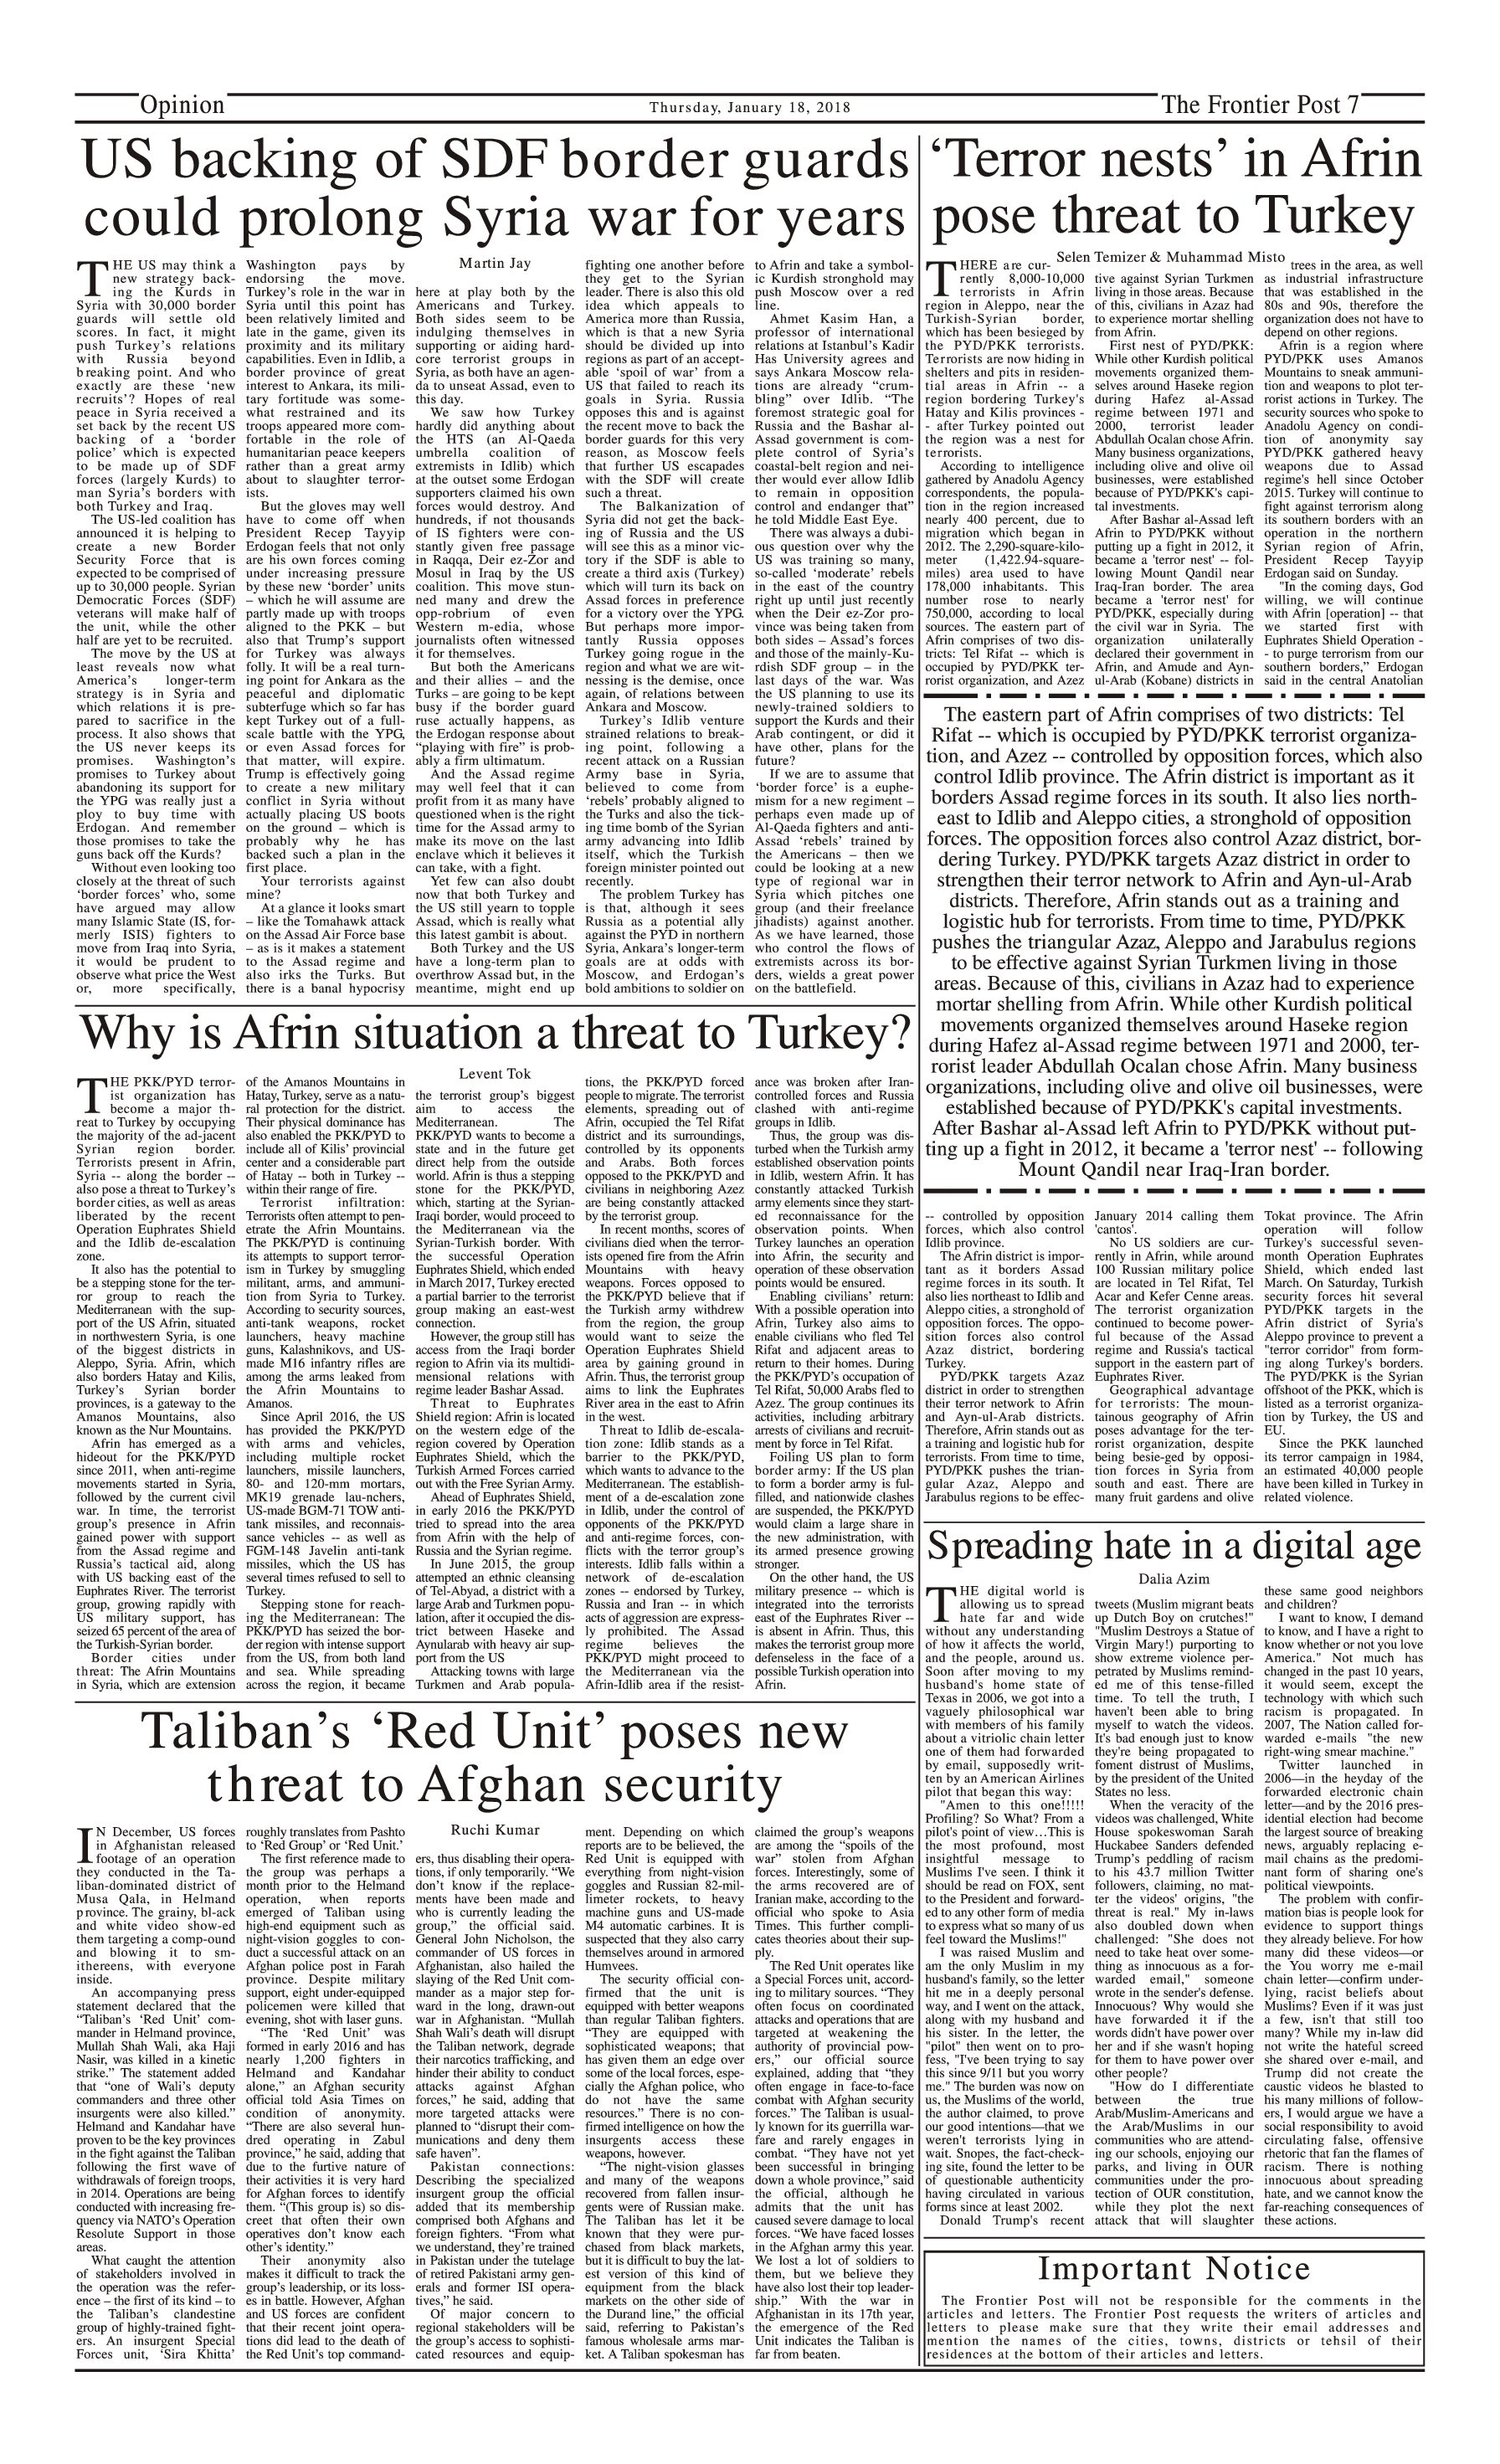 Opinion Page 18-1